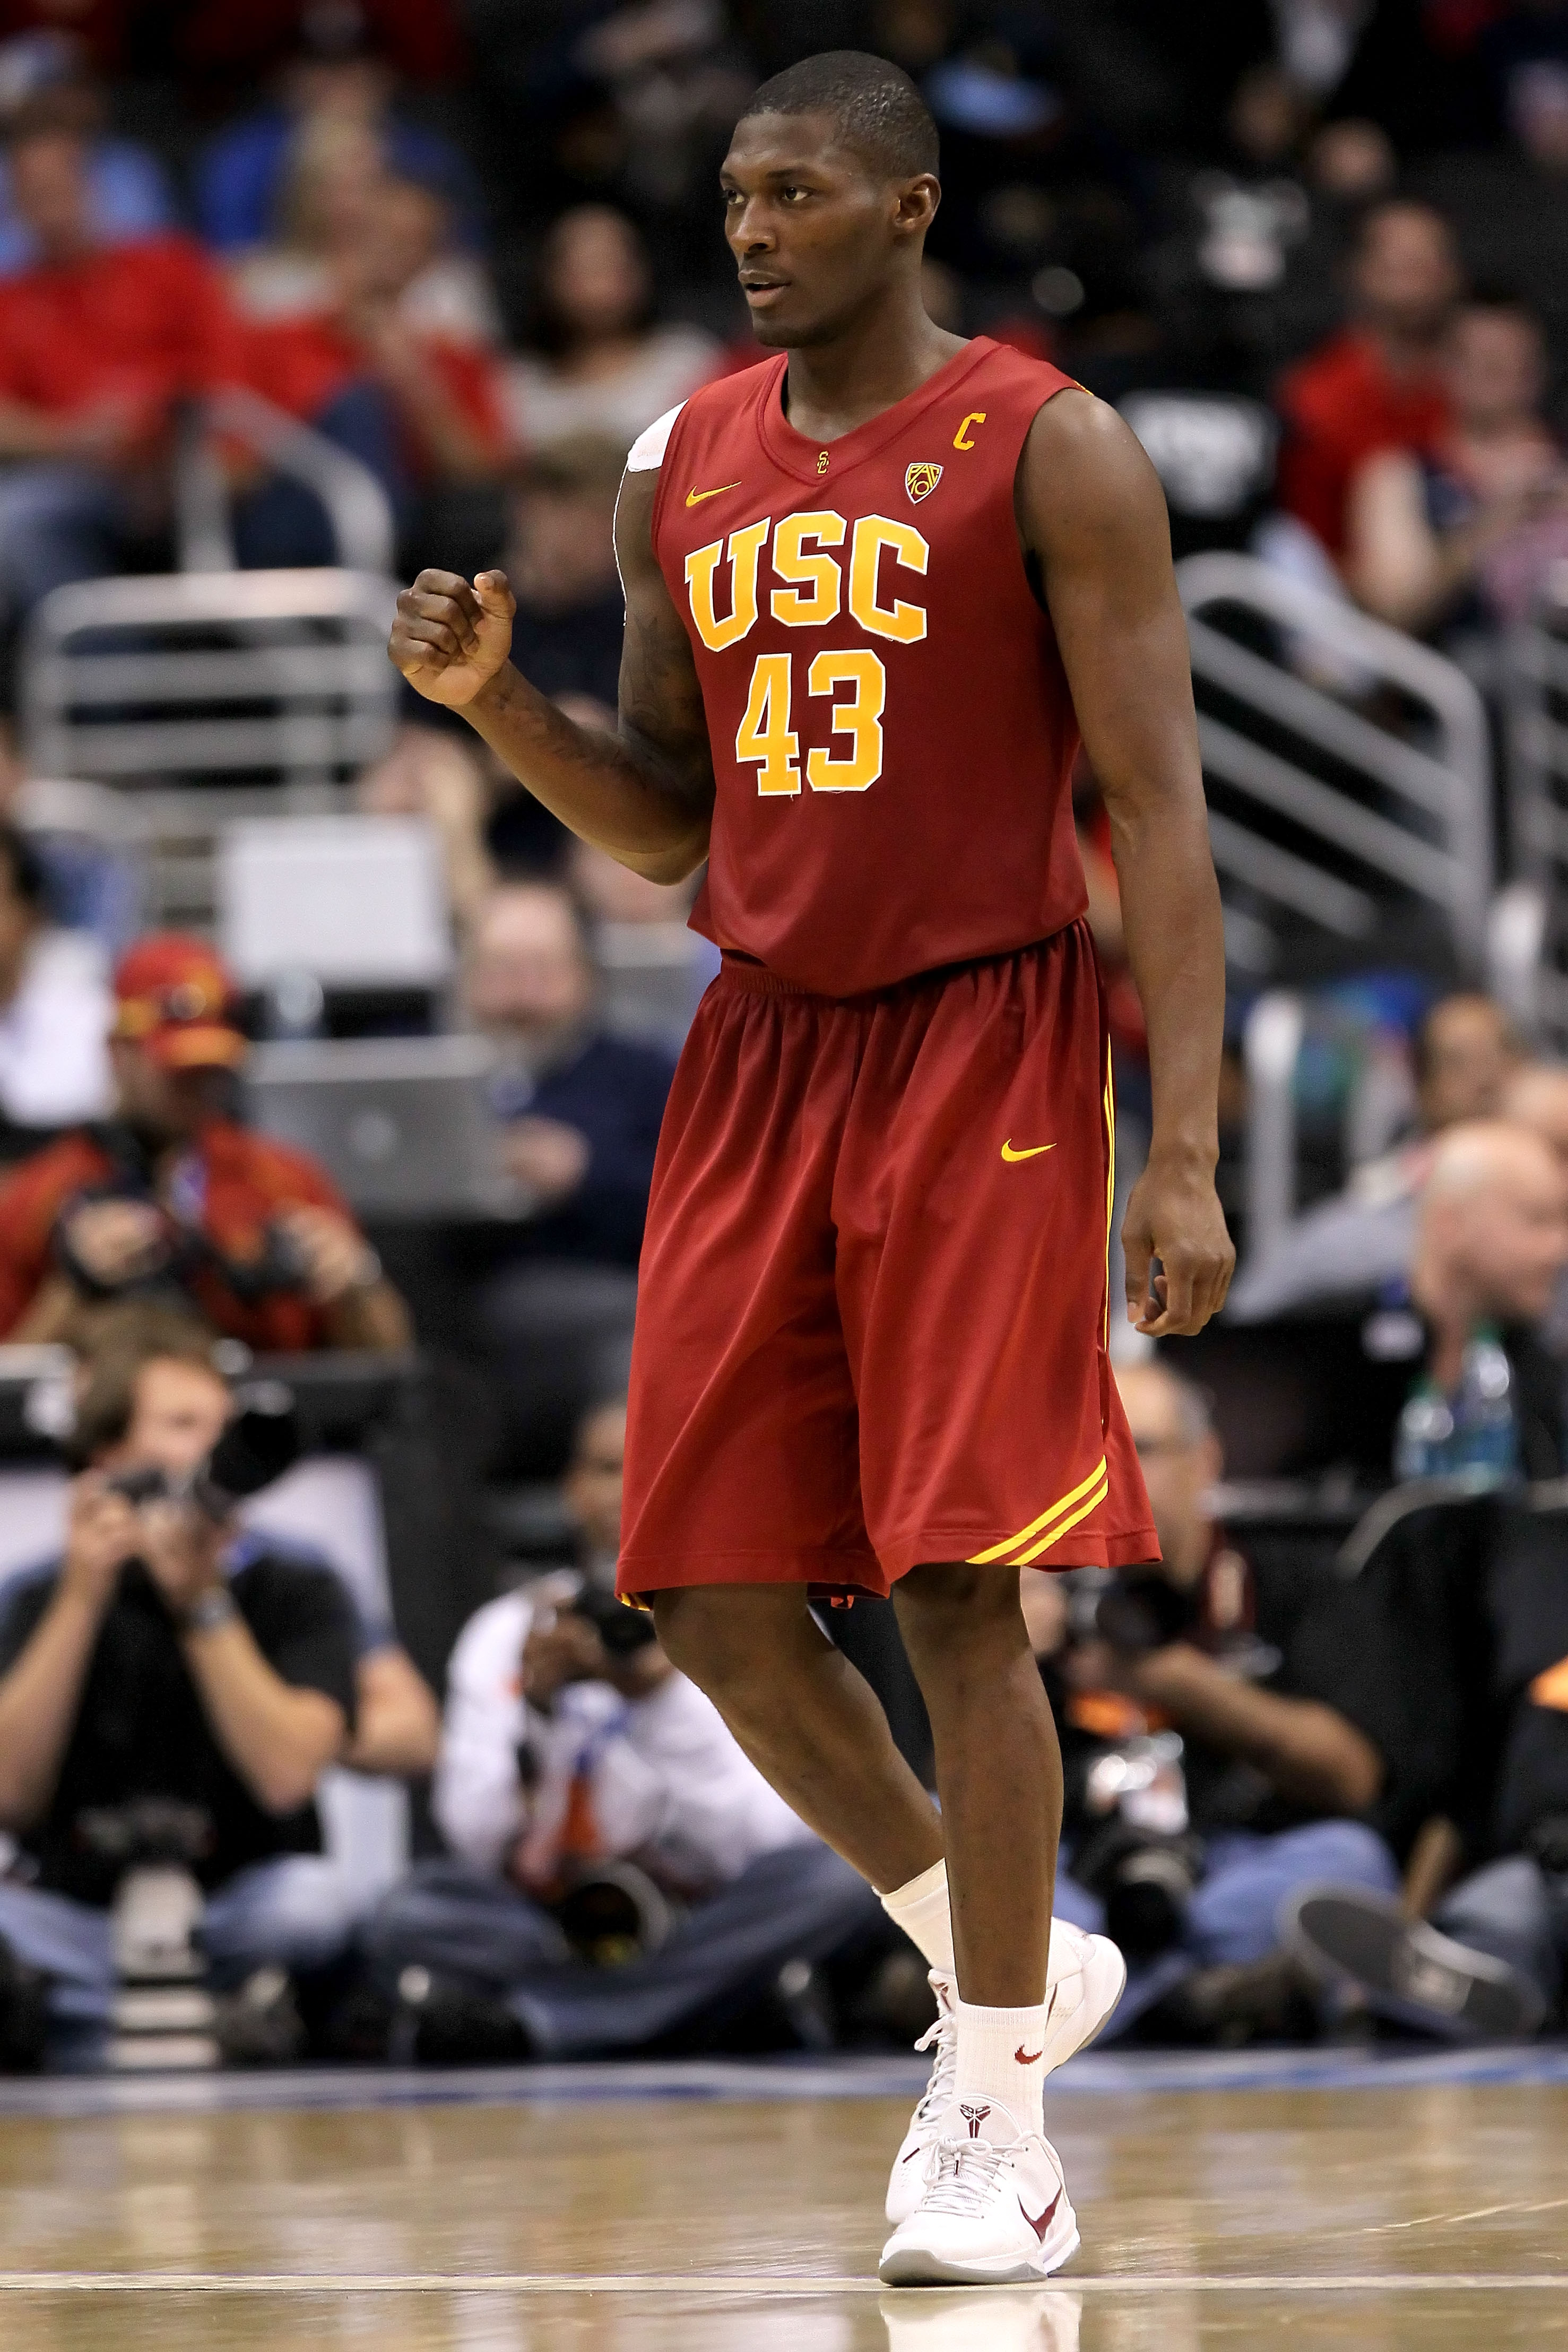 LOS ANGELES, CA - MARCH 11:  Marcus Simmons #43 of the USC Trojans reacts in the second half while taking on the Arizona Wildcats in the semifinals of the 2011 Pacific Life Pac-10 Men's Basketball Tournament at Staples Center on March 11, 2011 in Los Ange